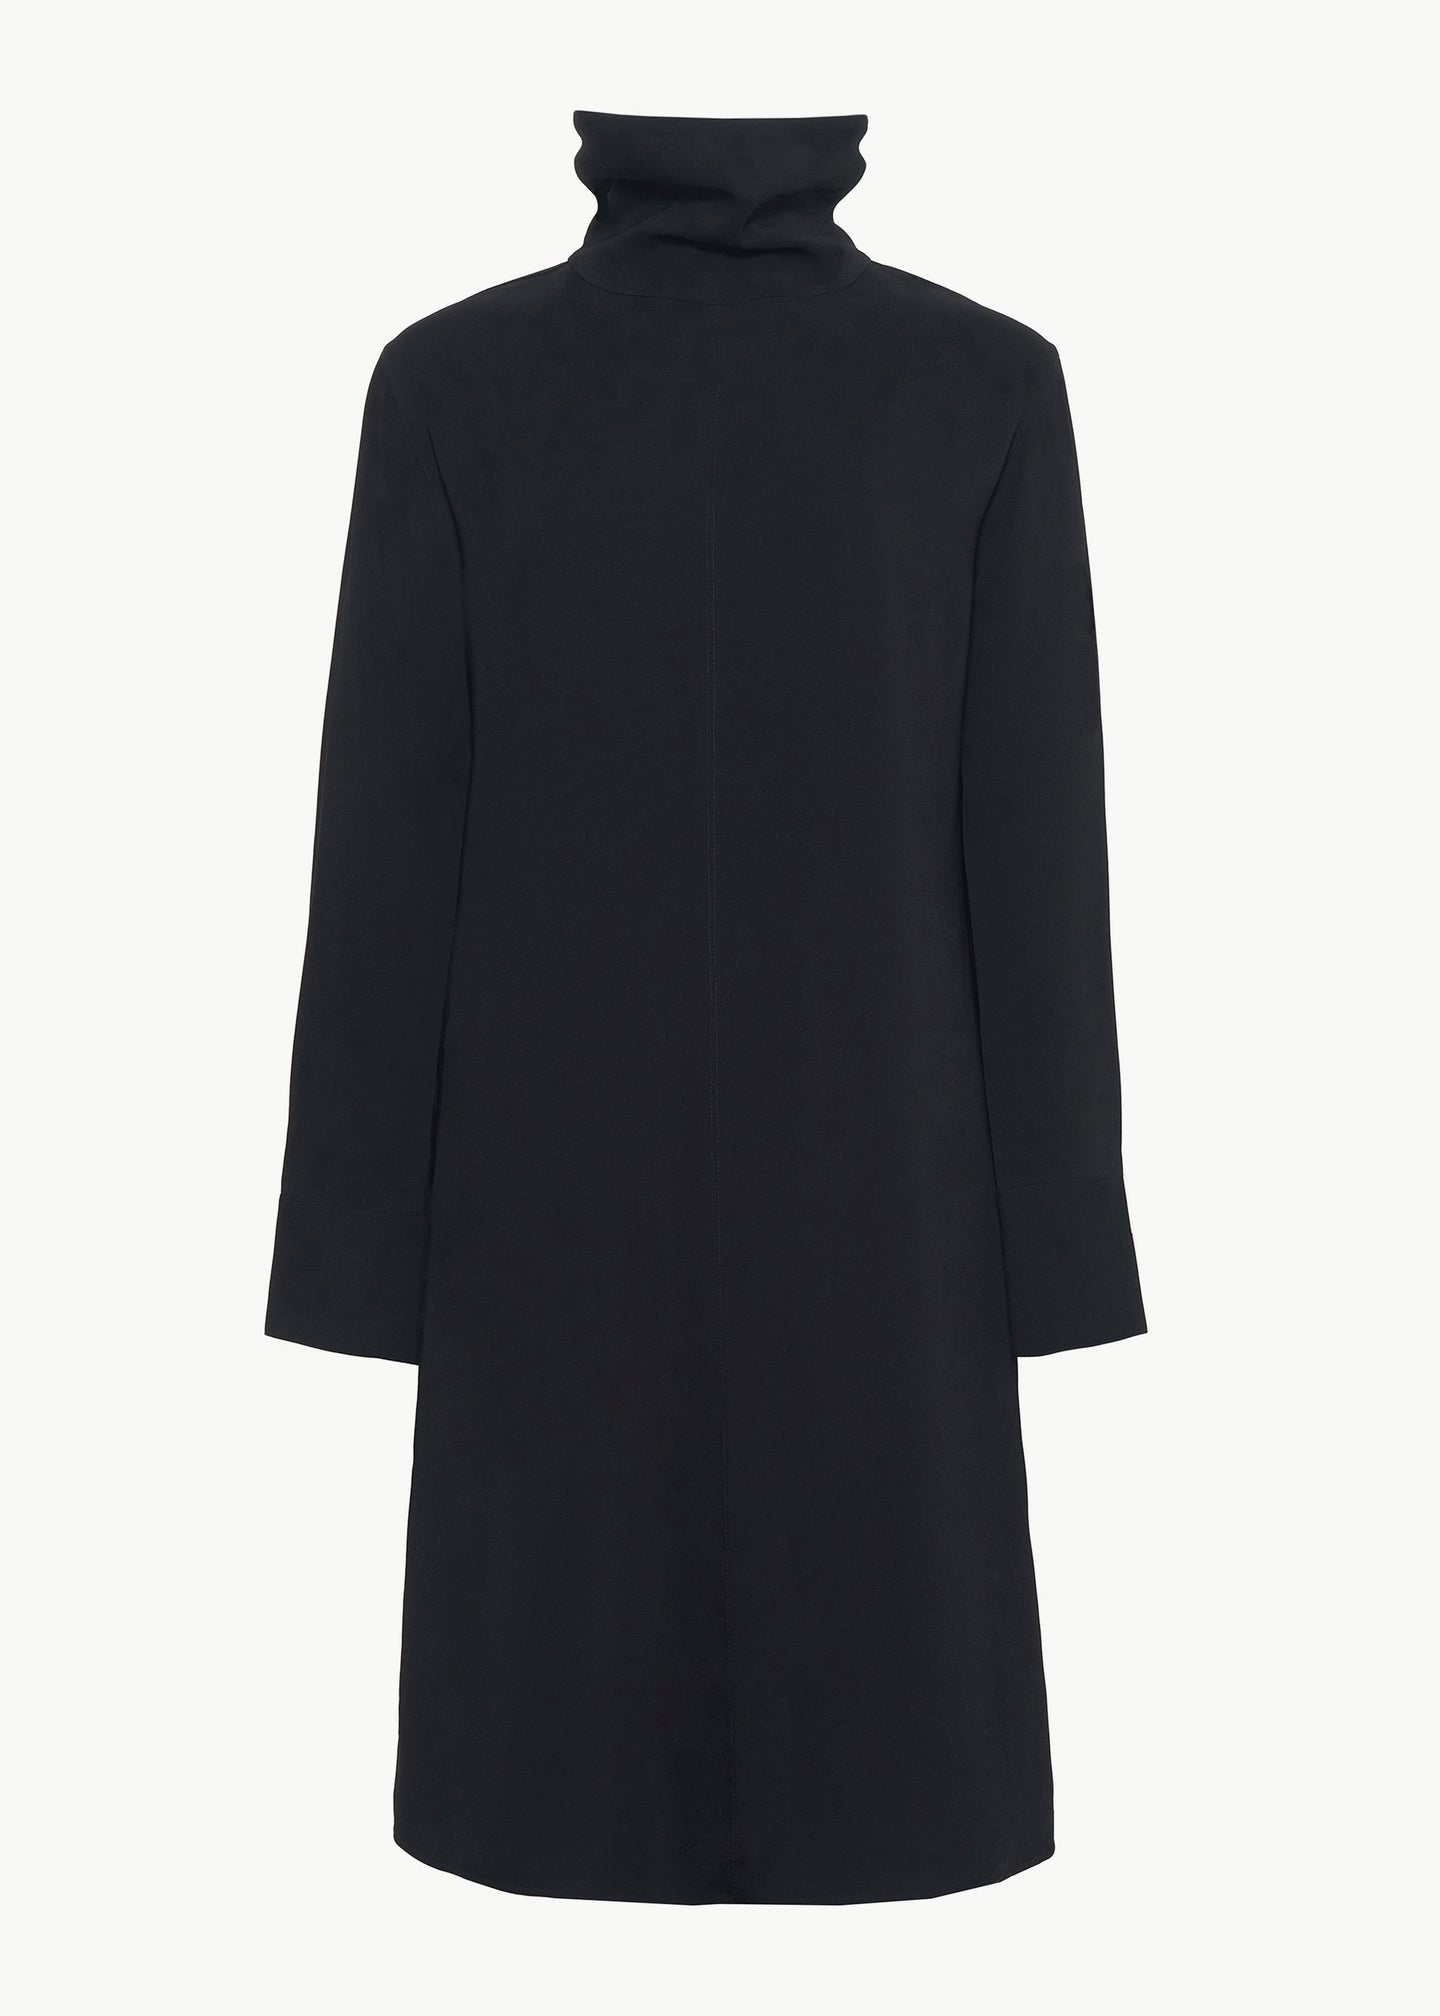 CO - Long Sleeve Dress in Stretch Crepe - Black